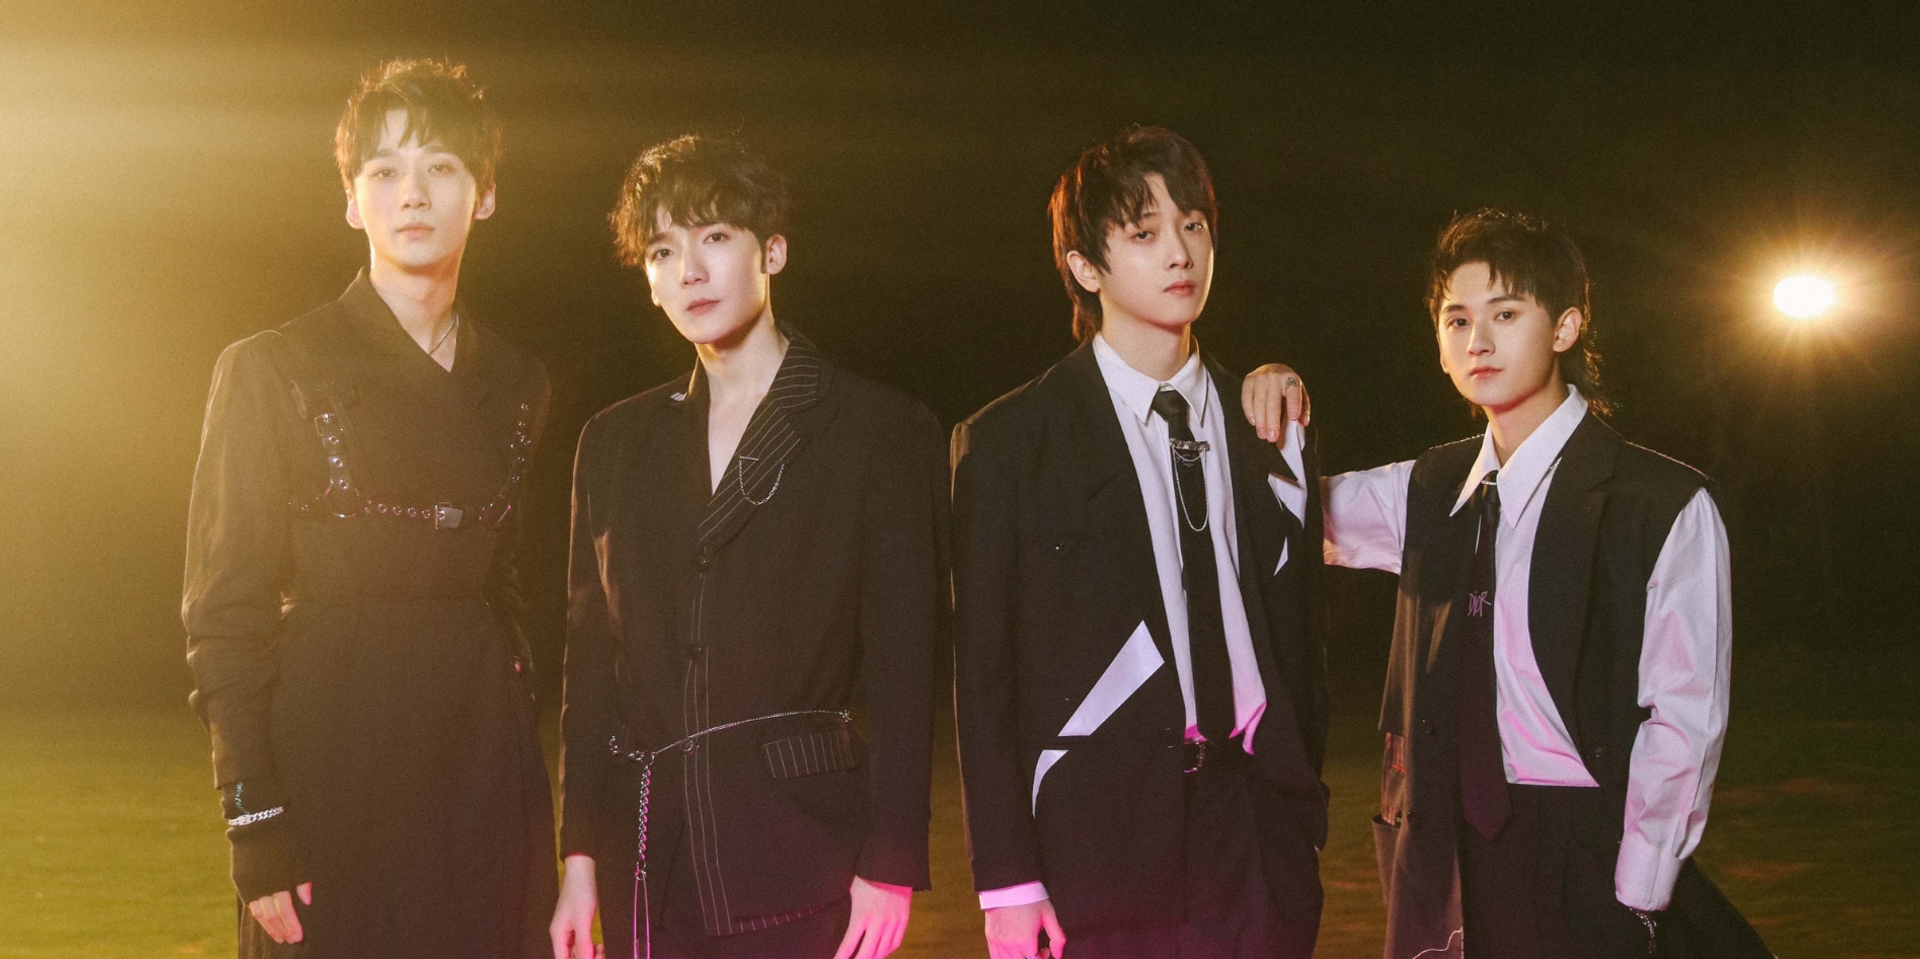 Chinese boy group T.U.B.S announce fanclub name, colour, and physical album release